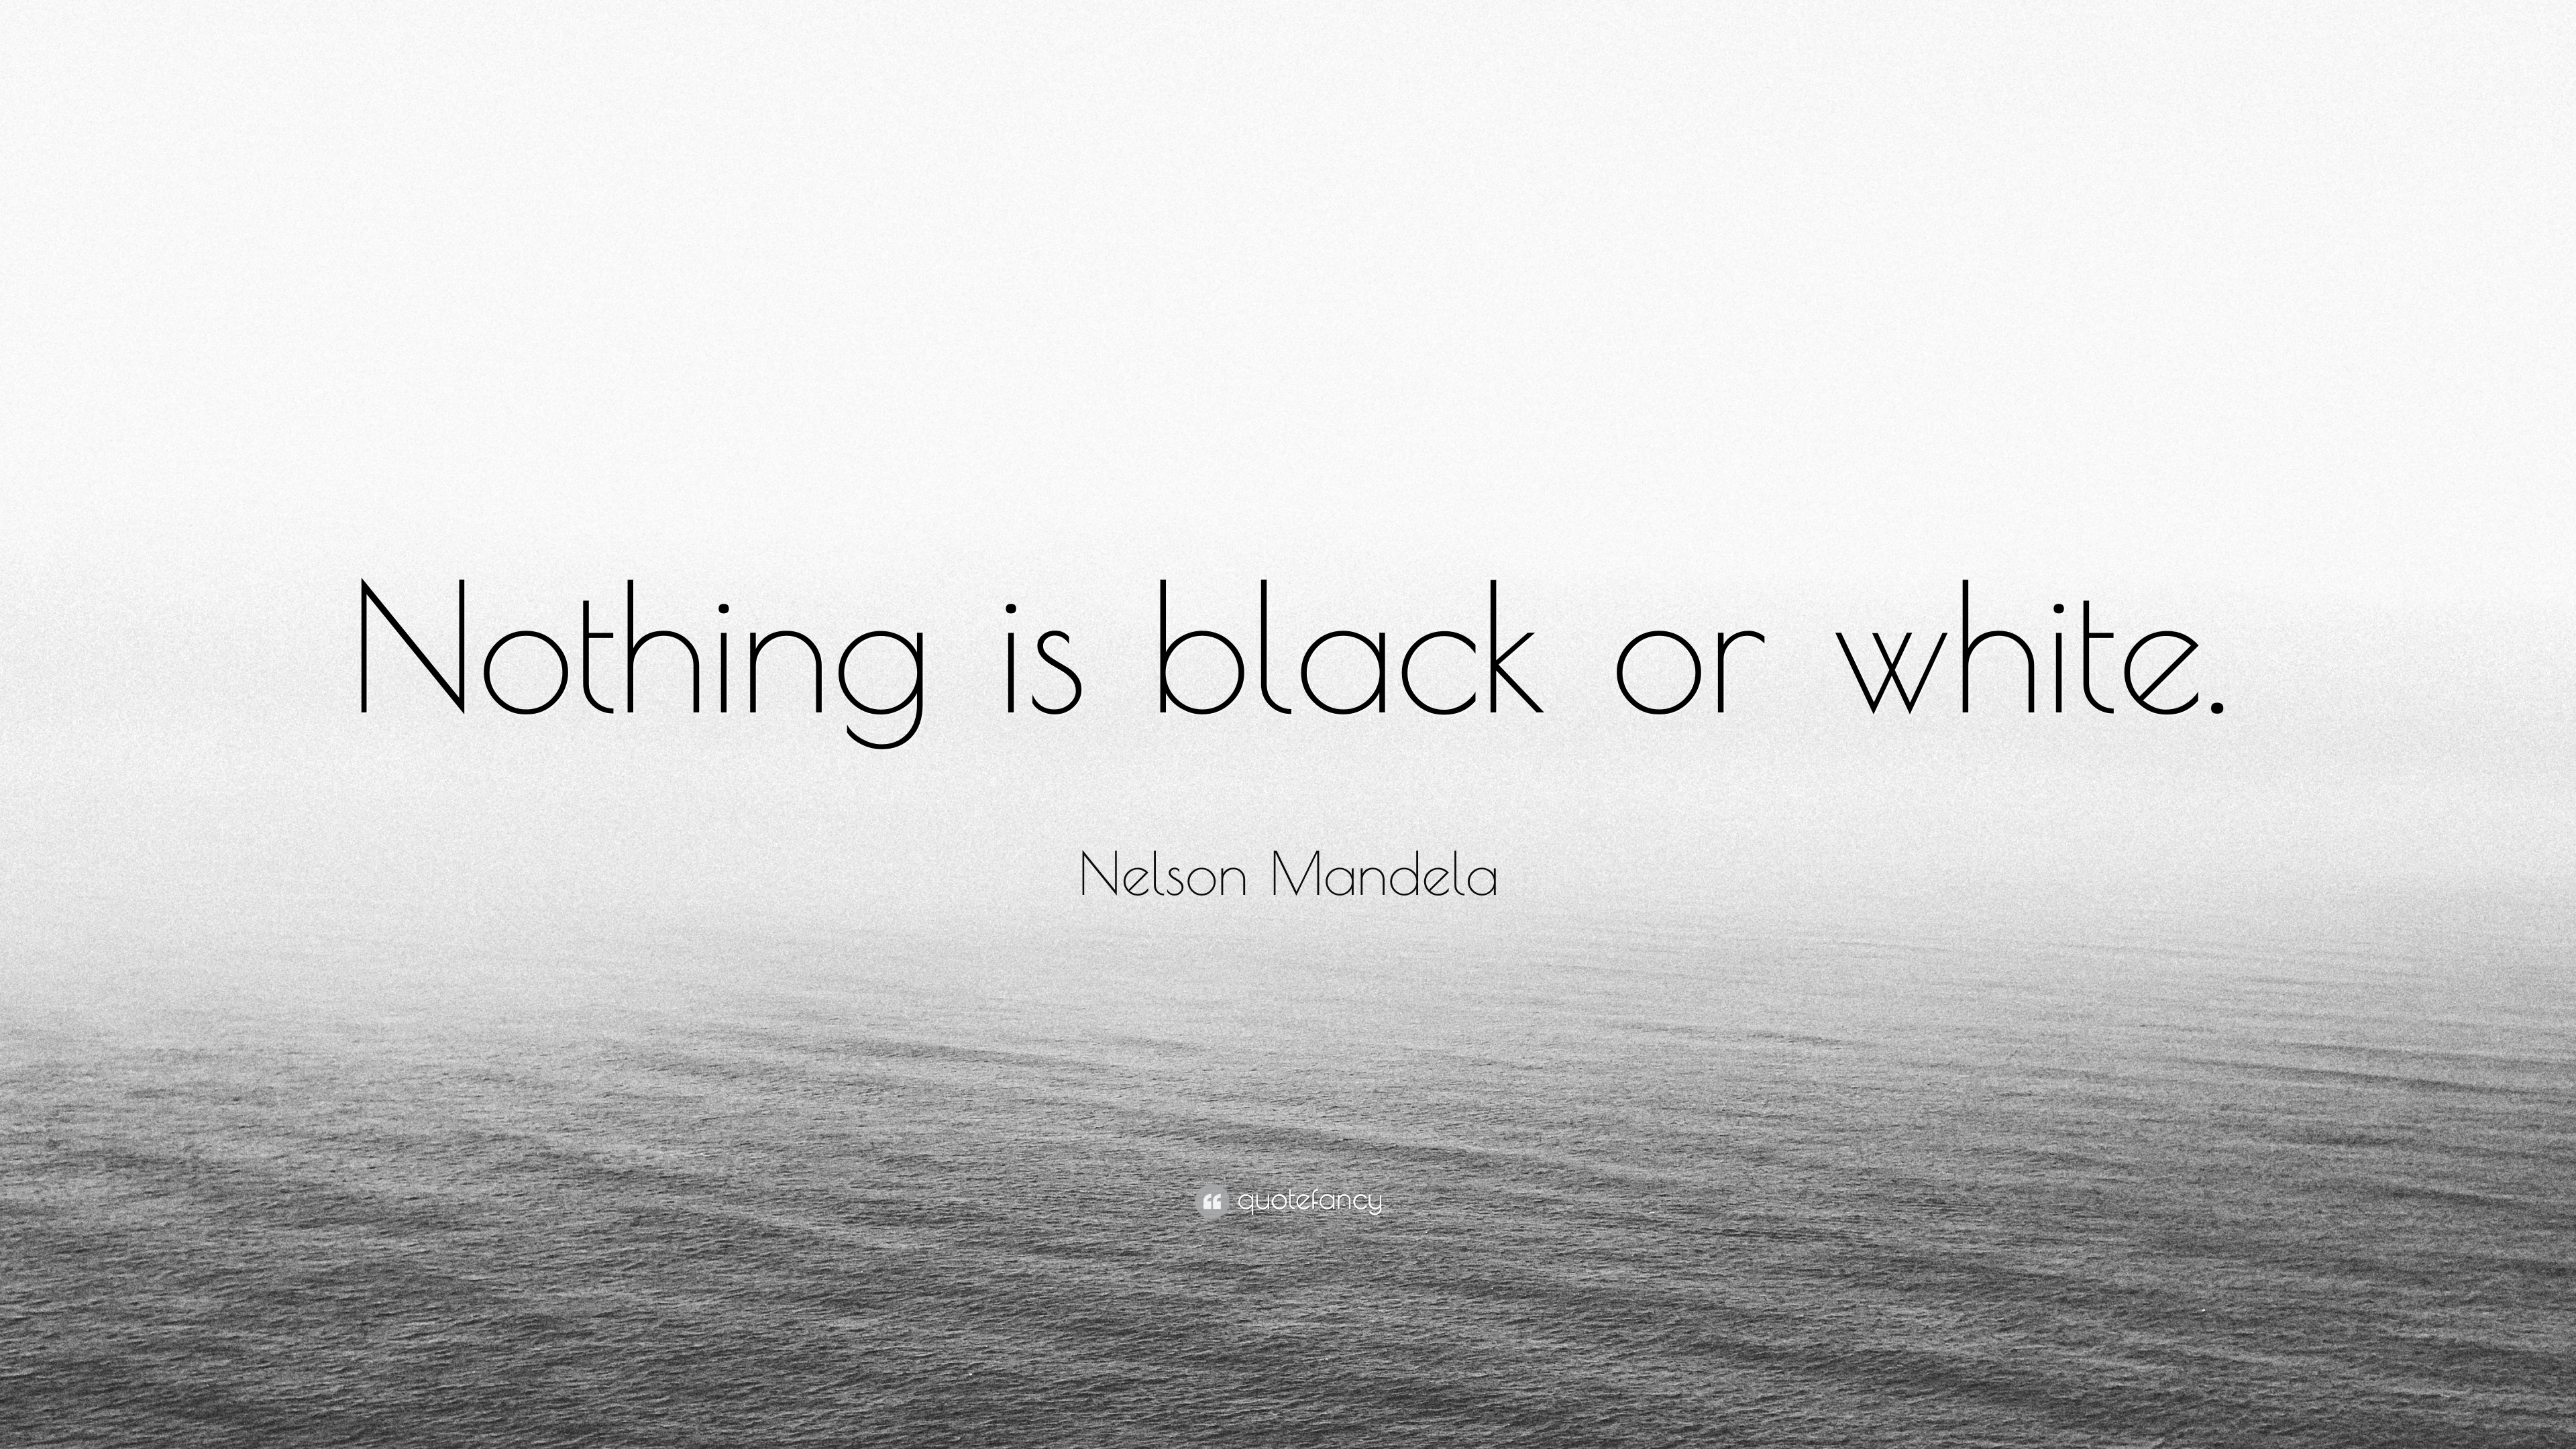 Nelson mandela quote nothing is black or white